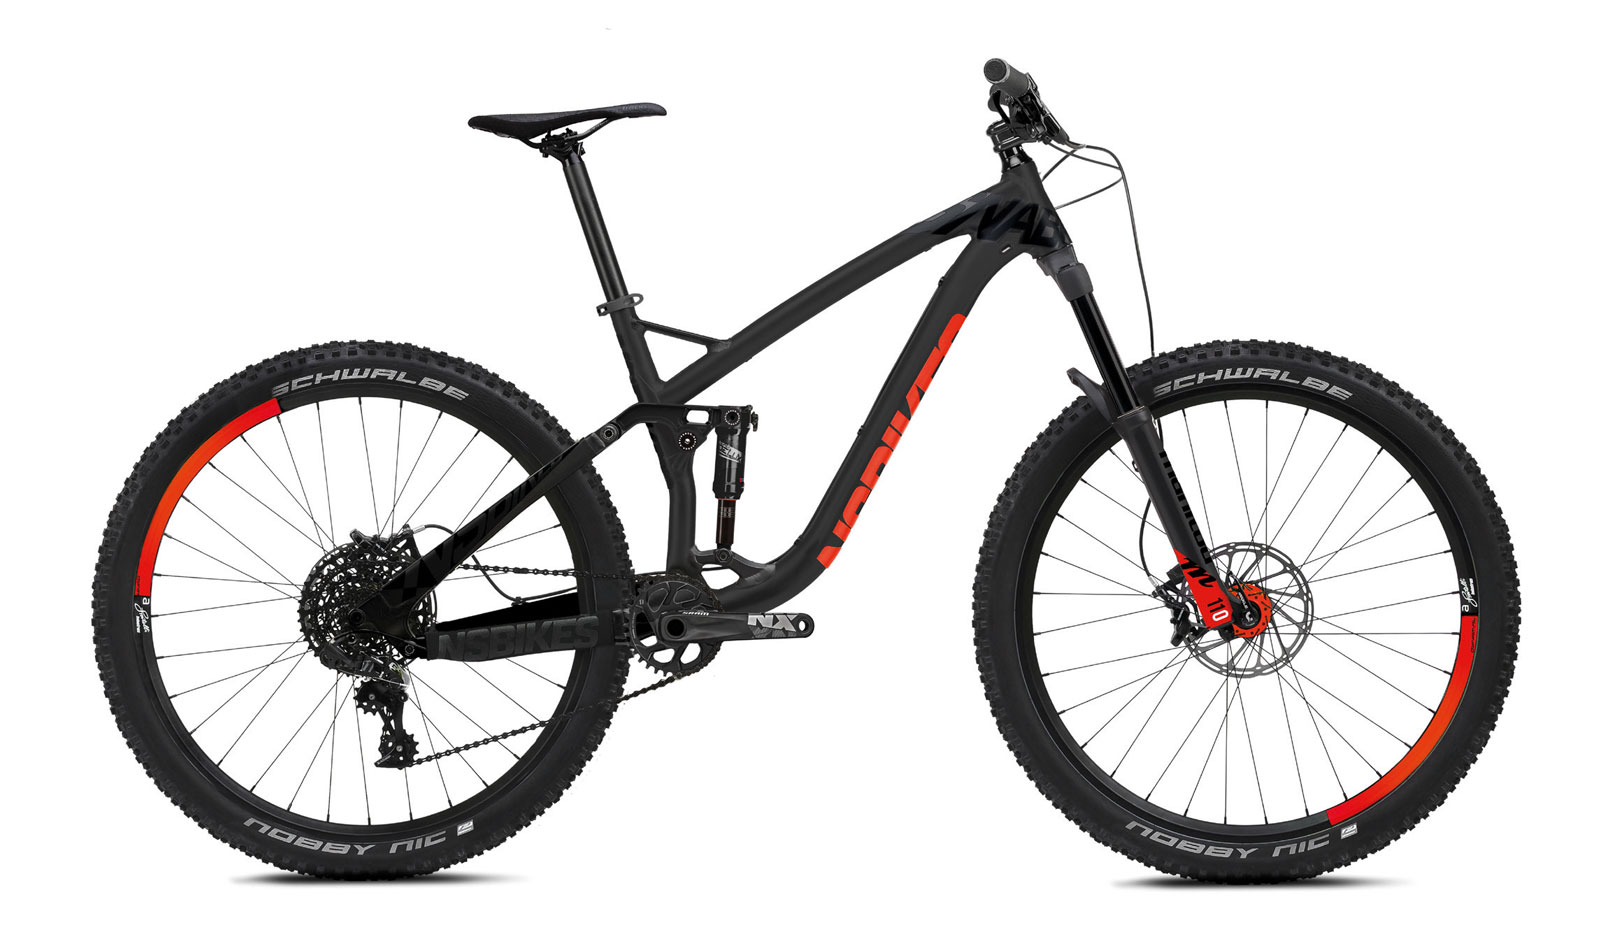 2017 Bicykel NS Bikes Snabb Plus2